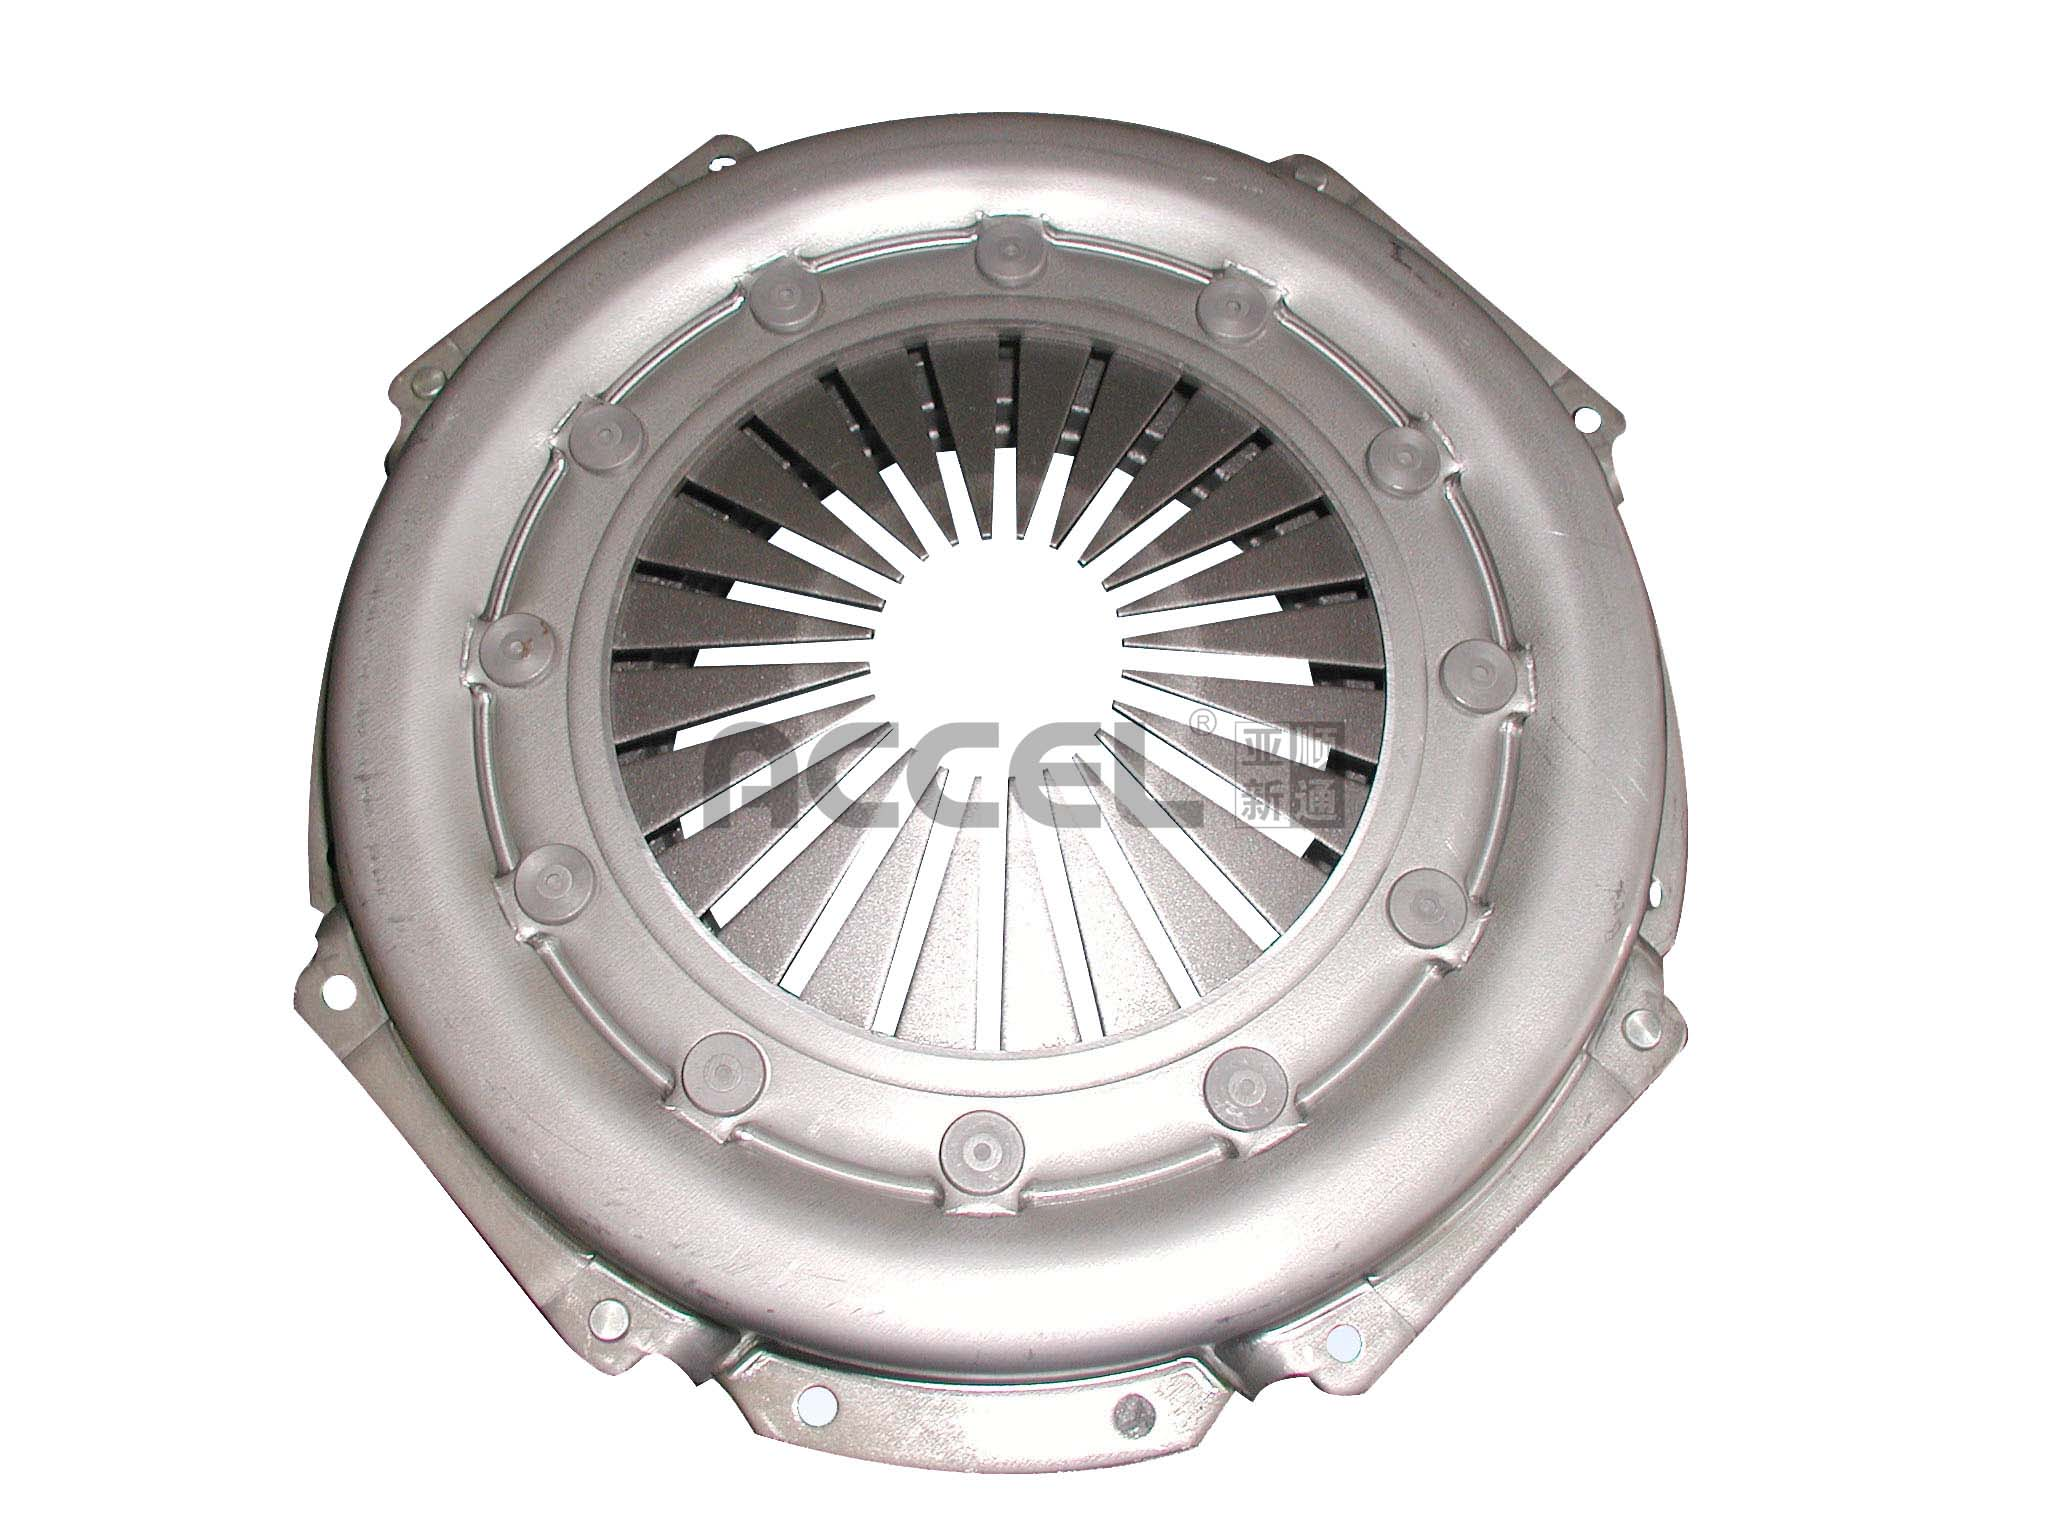 Clutch Cover/OE:5000 456 388/310*170*348/STC-073/OTHERS/LY322/805518/8602 1252/86021252/V-E/1903487